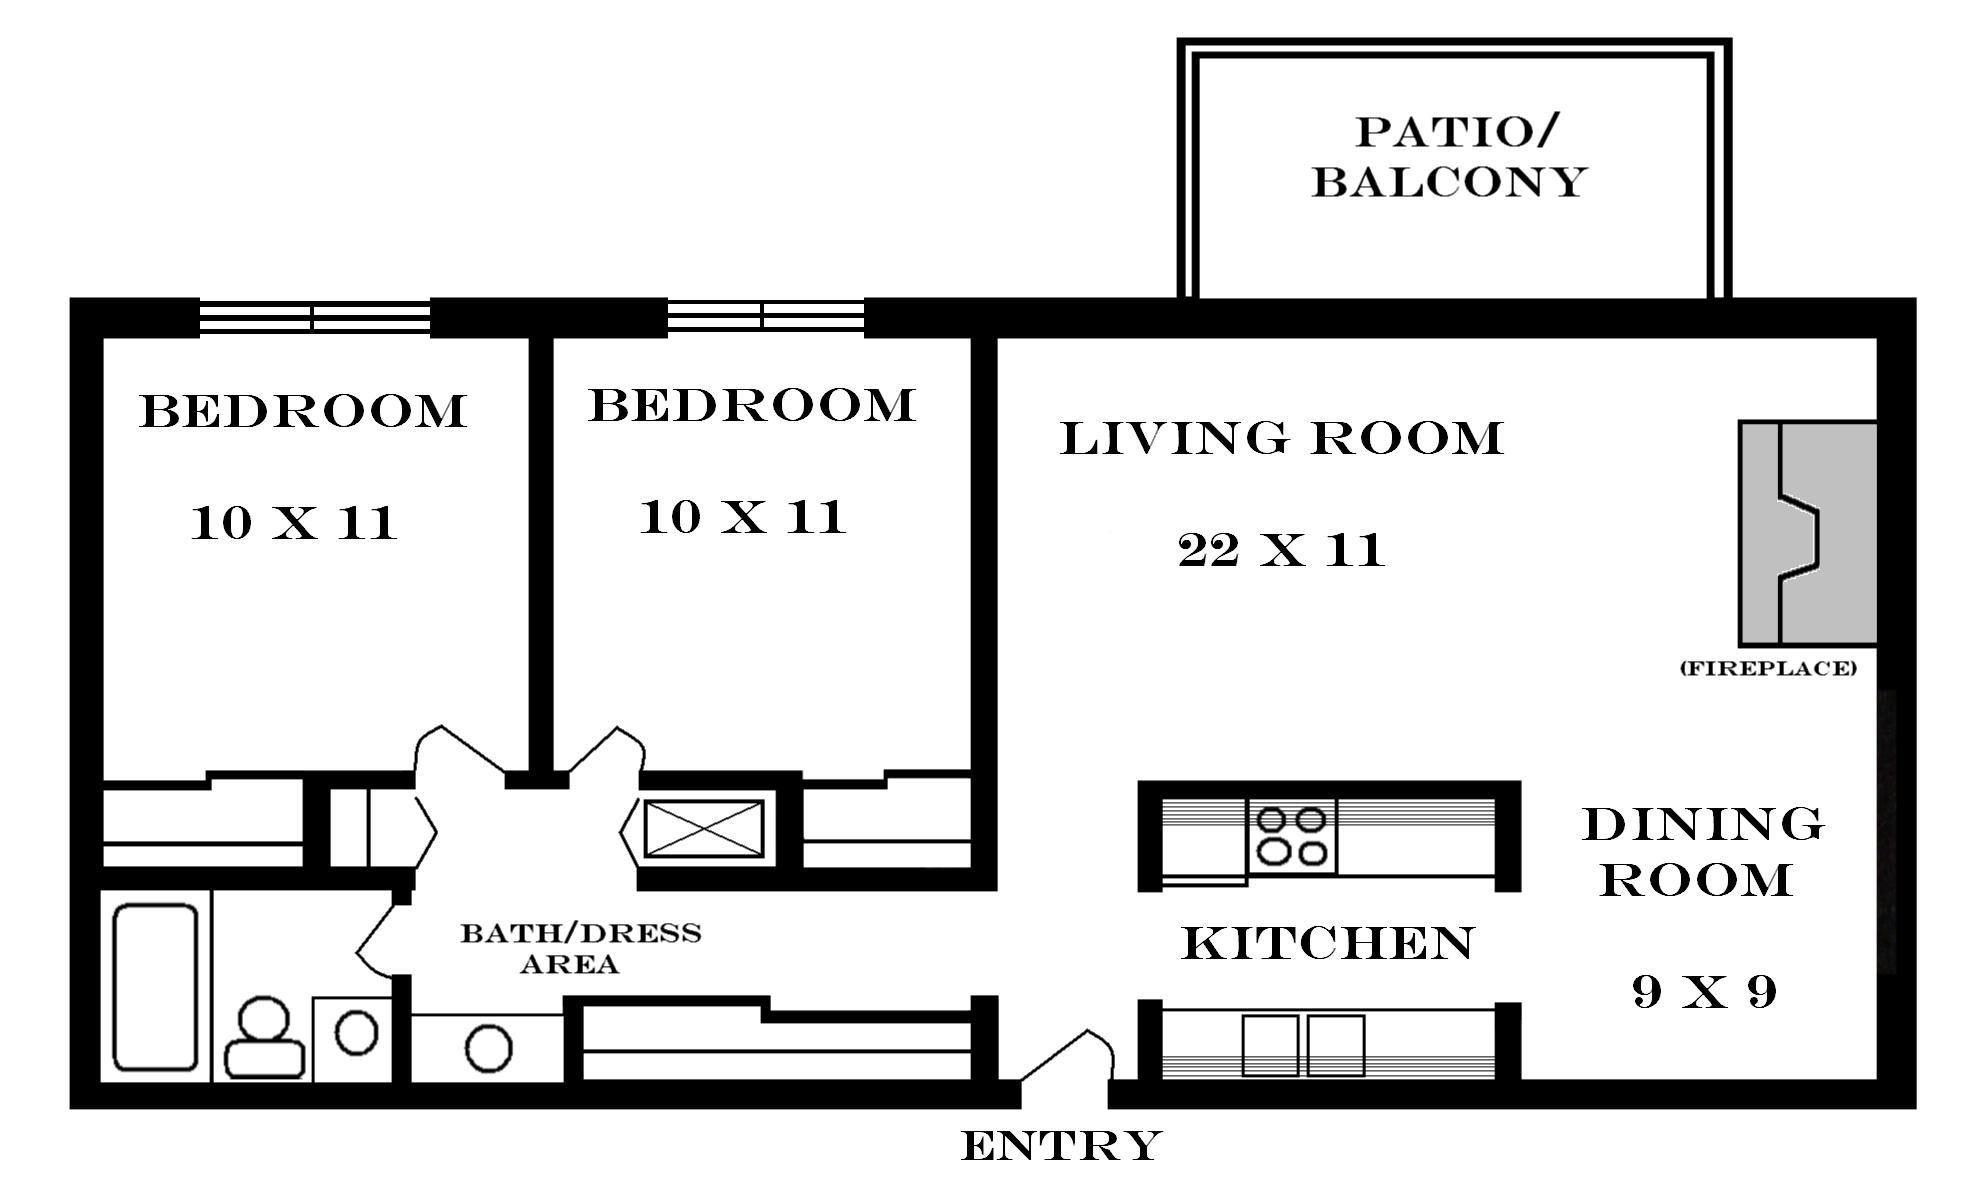 Small house floor plans 2 bedrooms 900 tiny houses Two bedroom floor plans